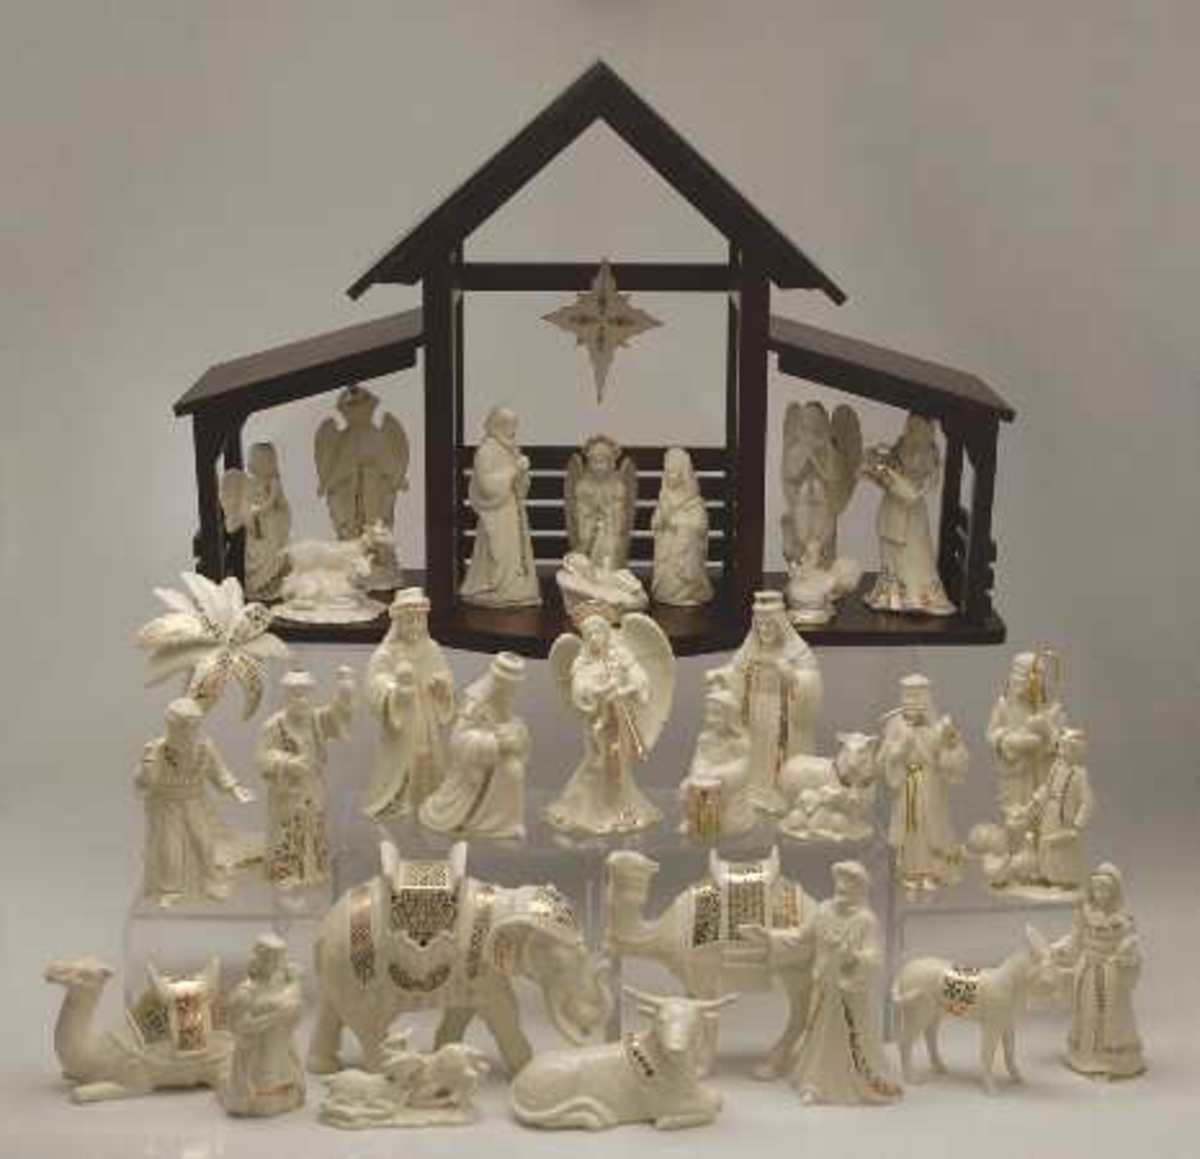 beautiful white nativity set by Lennox complete with wooden manger